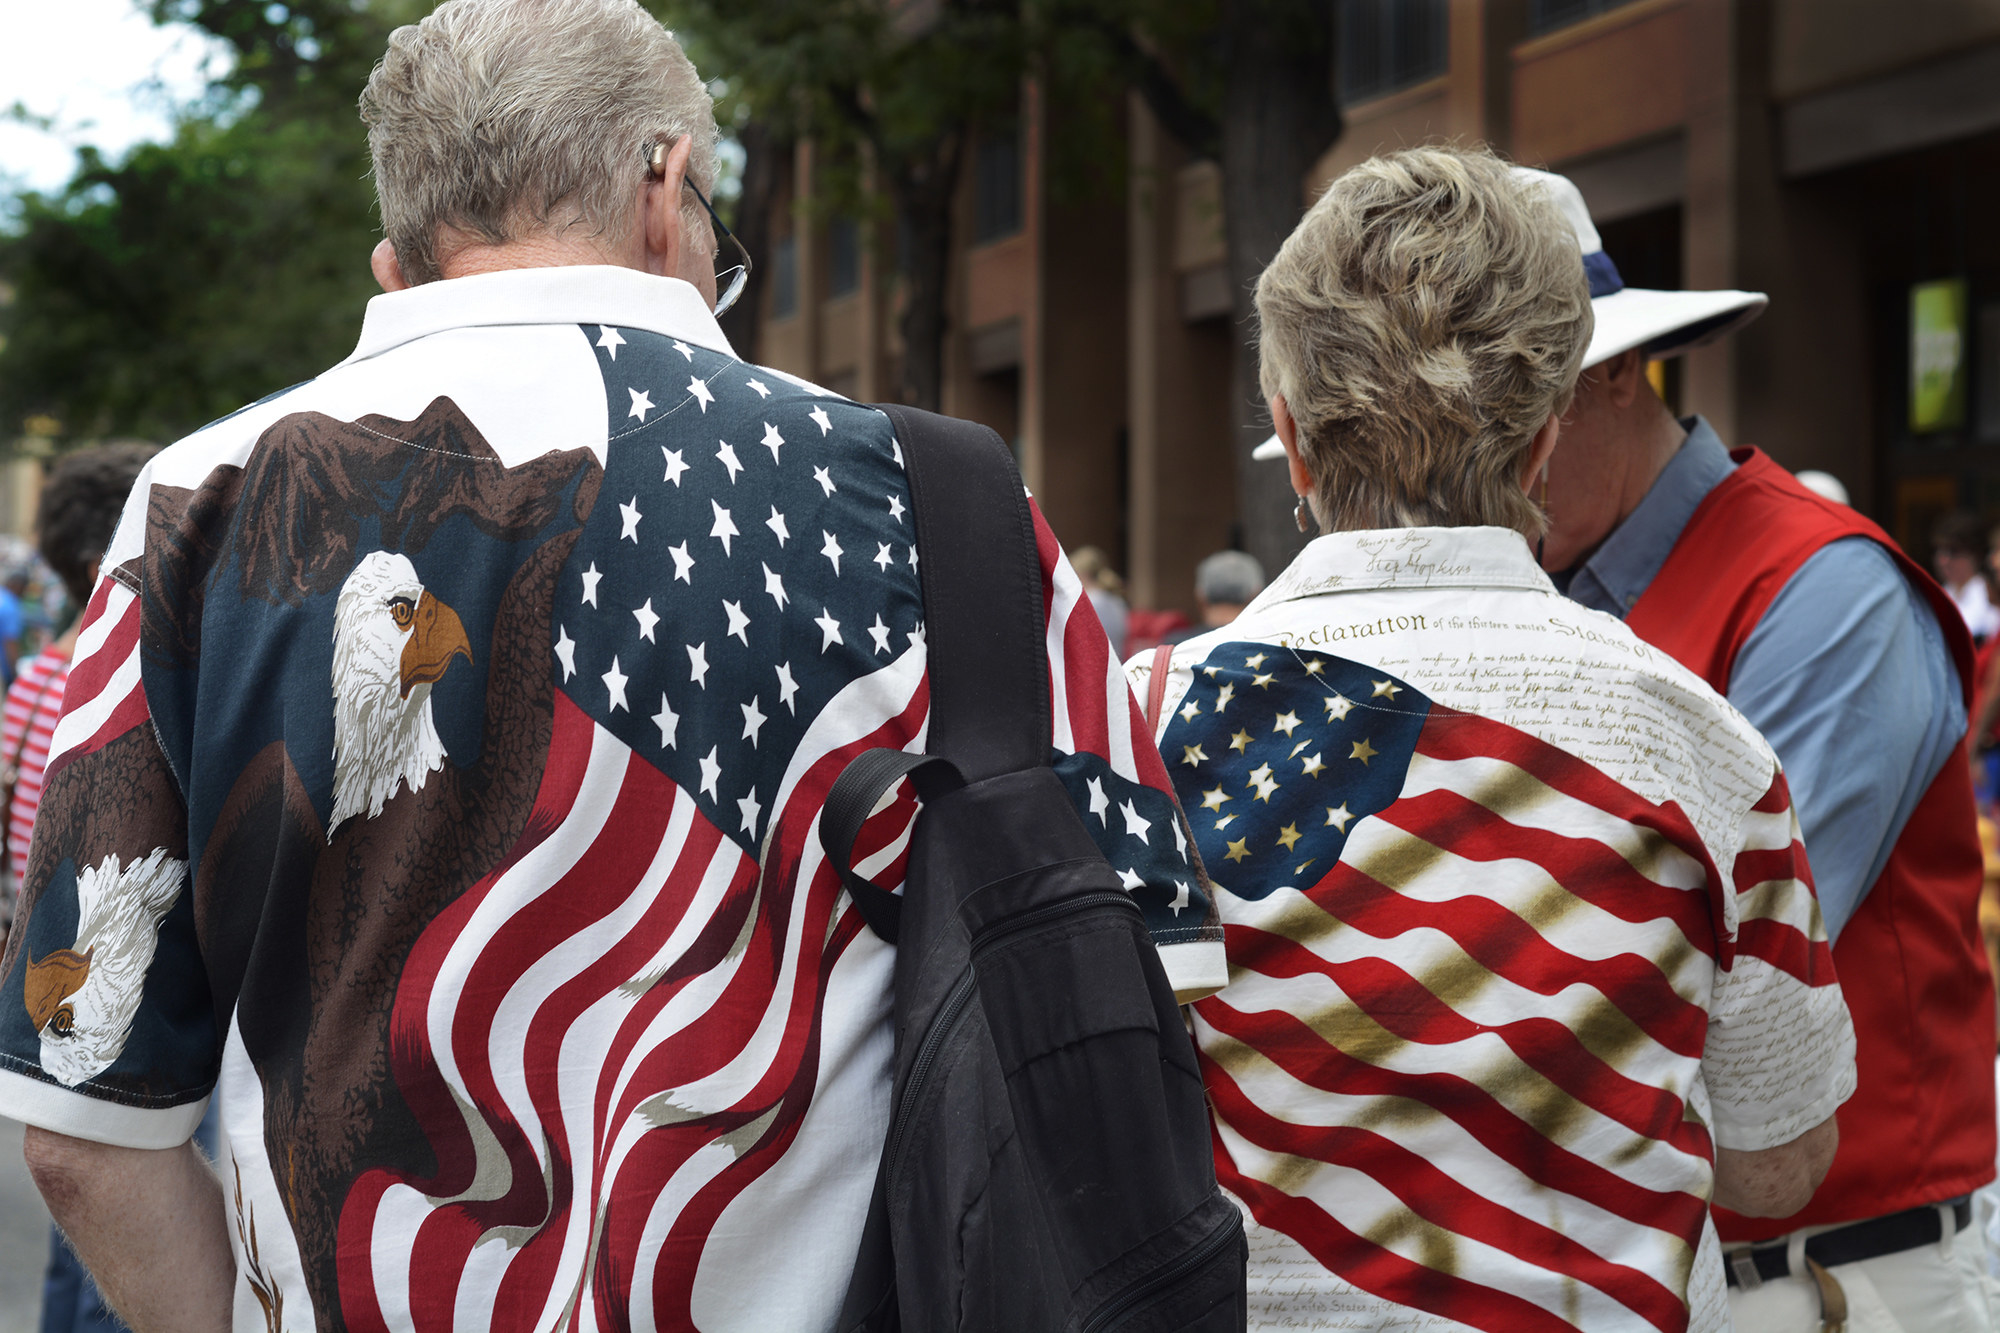 A man and a woman with their backs turned toward the camera wear flag-themed outfits, showing a bald eagle